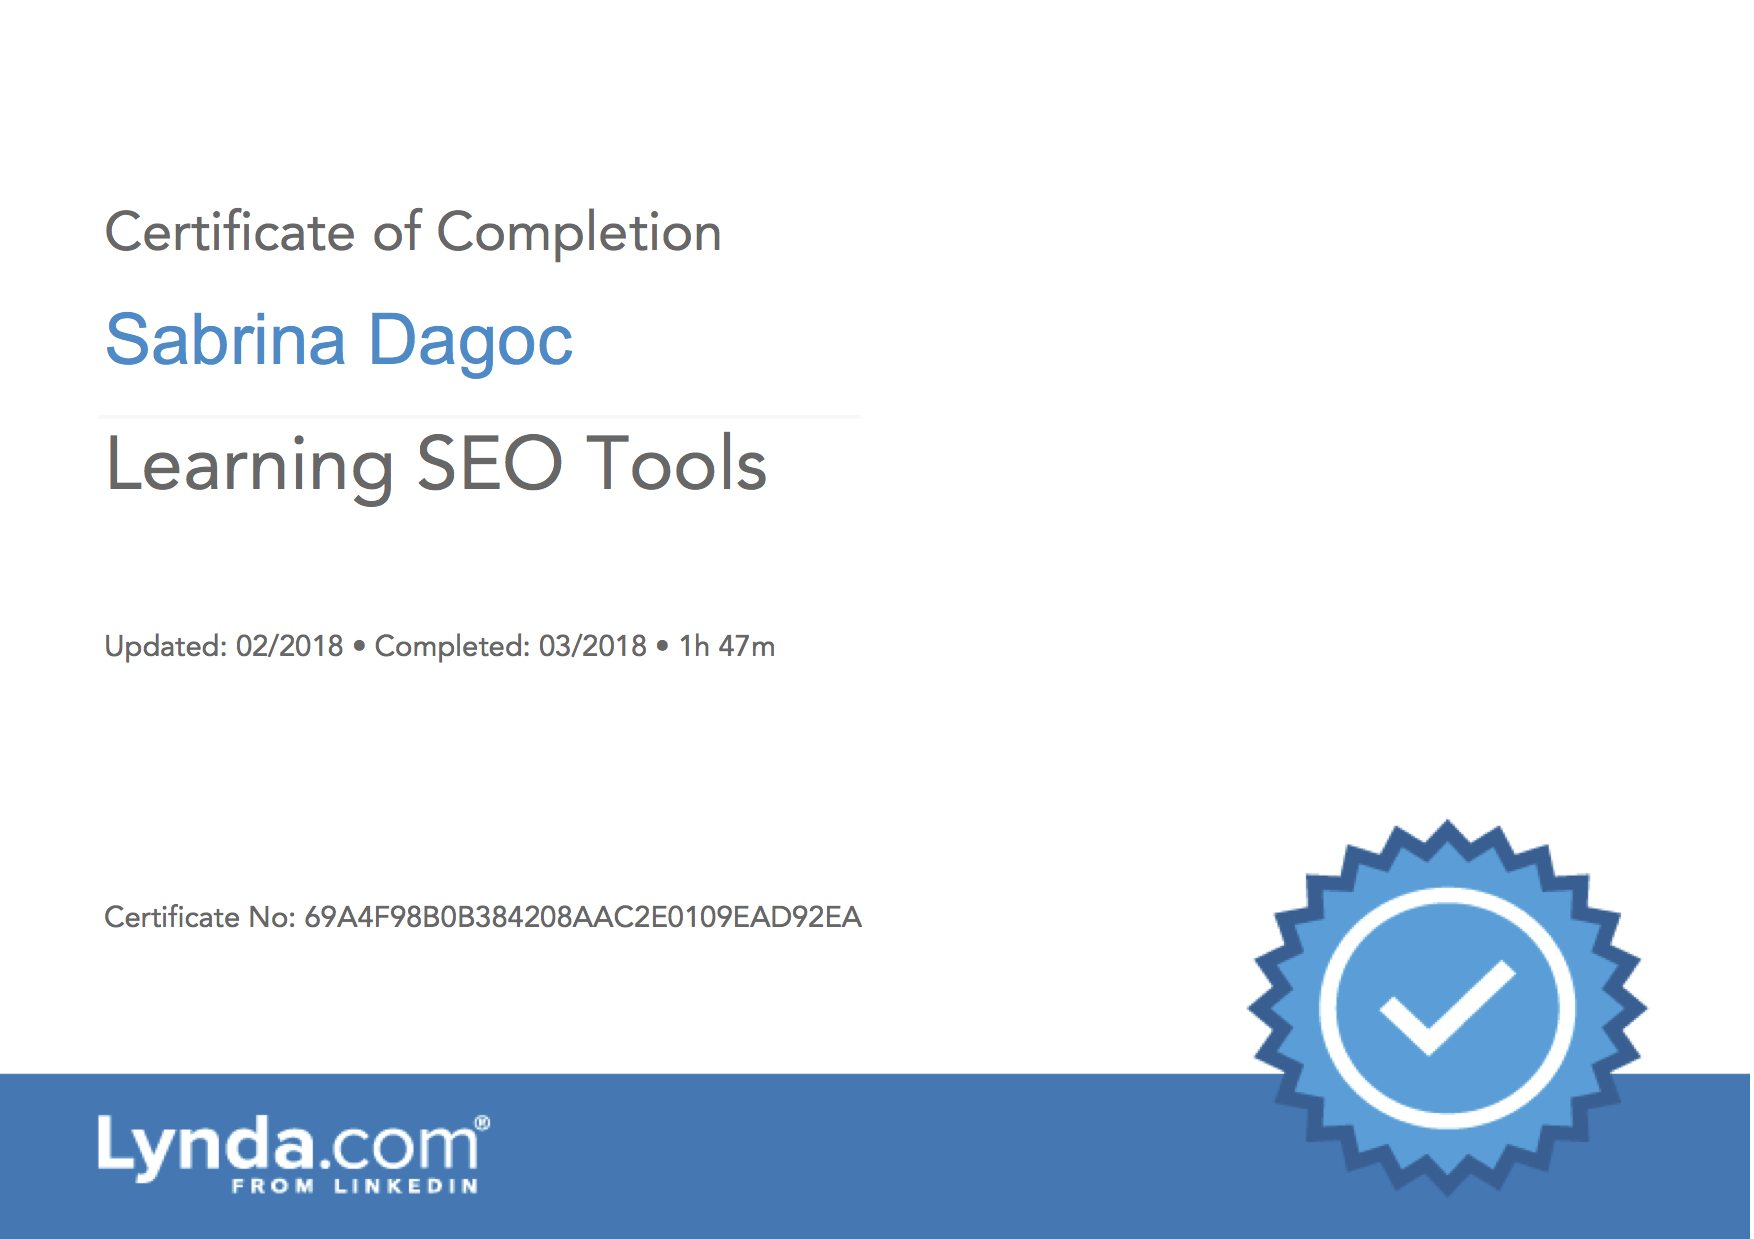 LearningSEOTools_CertificateOfCompletion.png